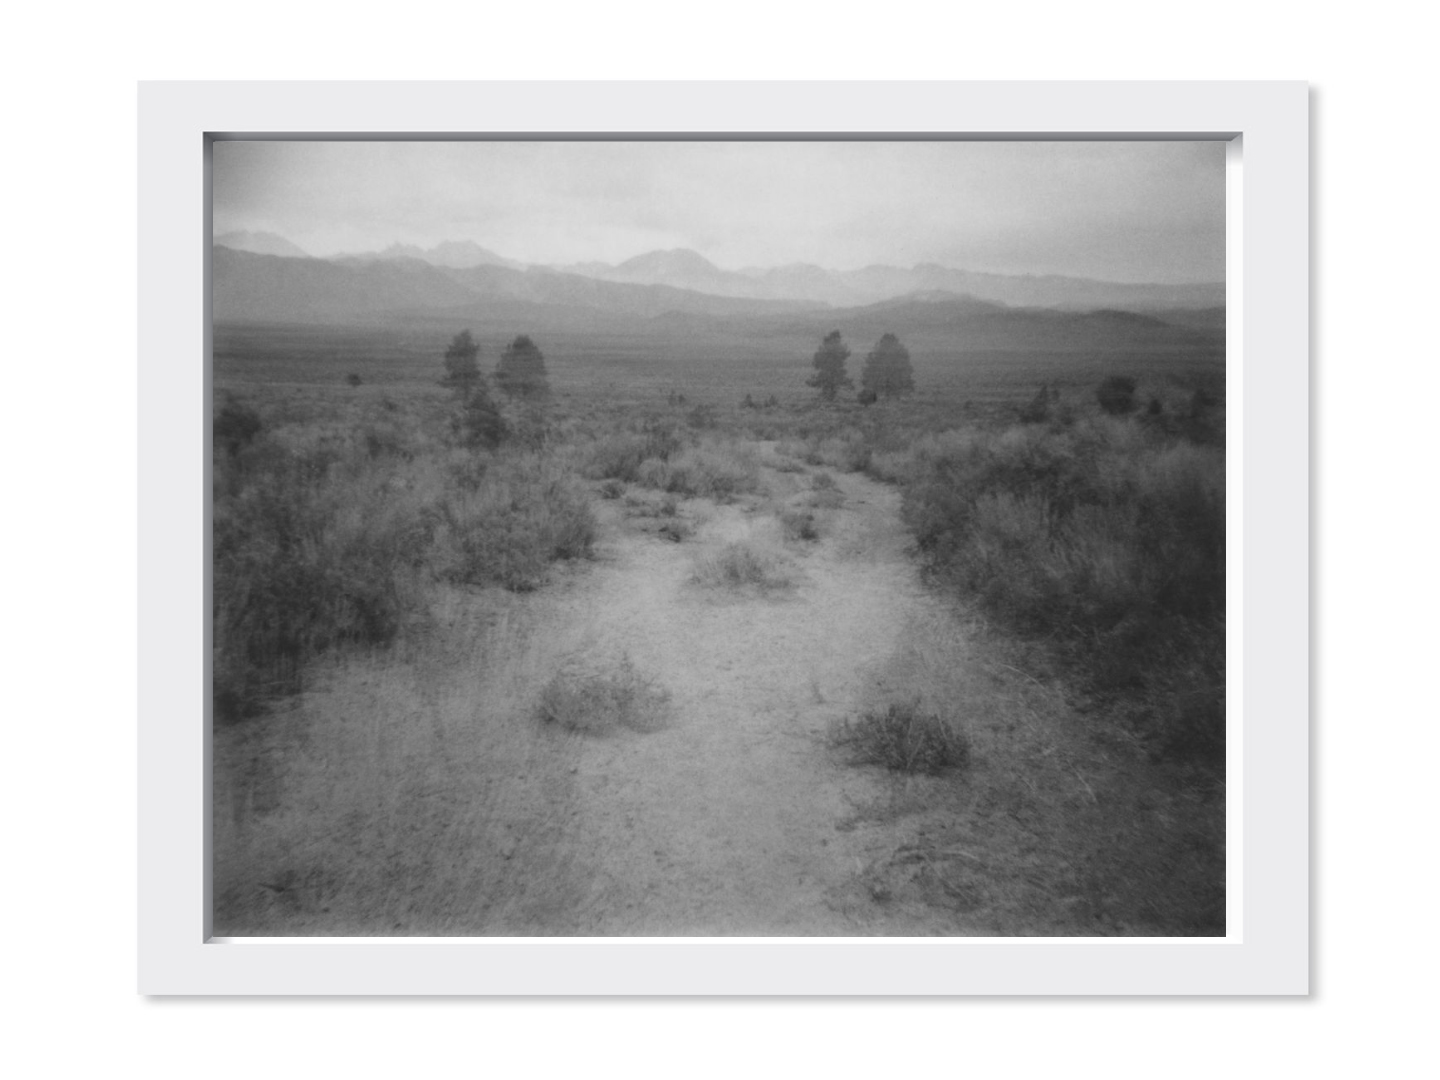 Sean McFarland,   Two Paths, Glass Mountains  , 2013-2015     8 x 10 in     Archival Pigment on Newsprint      Edition 1 of 3